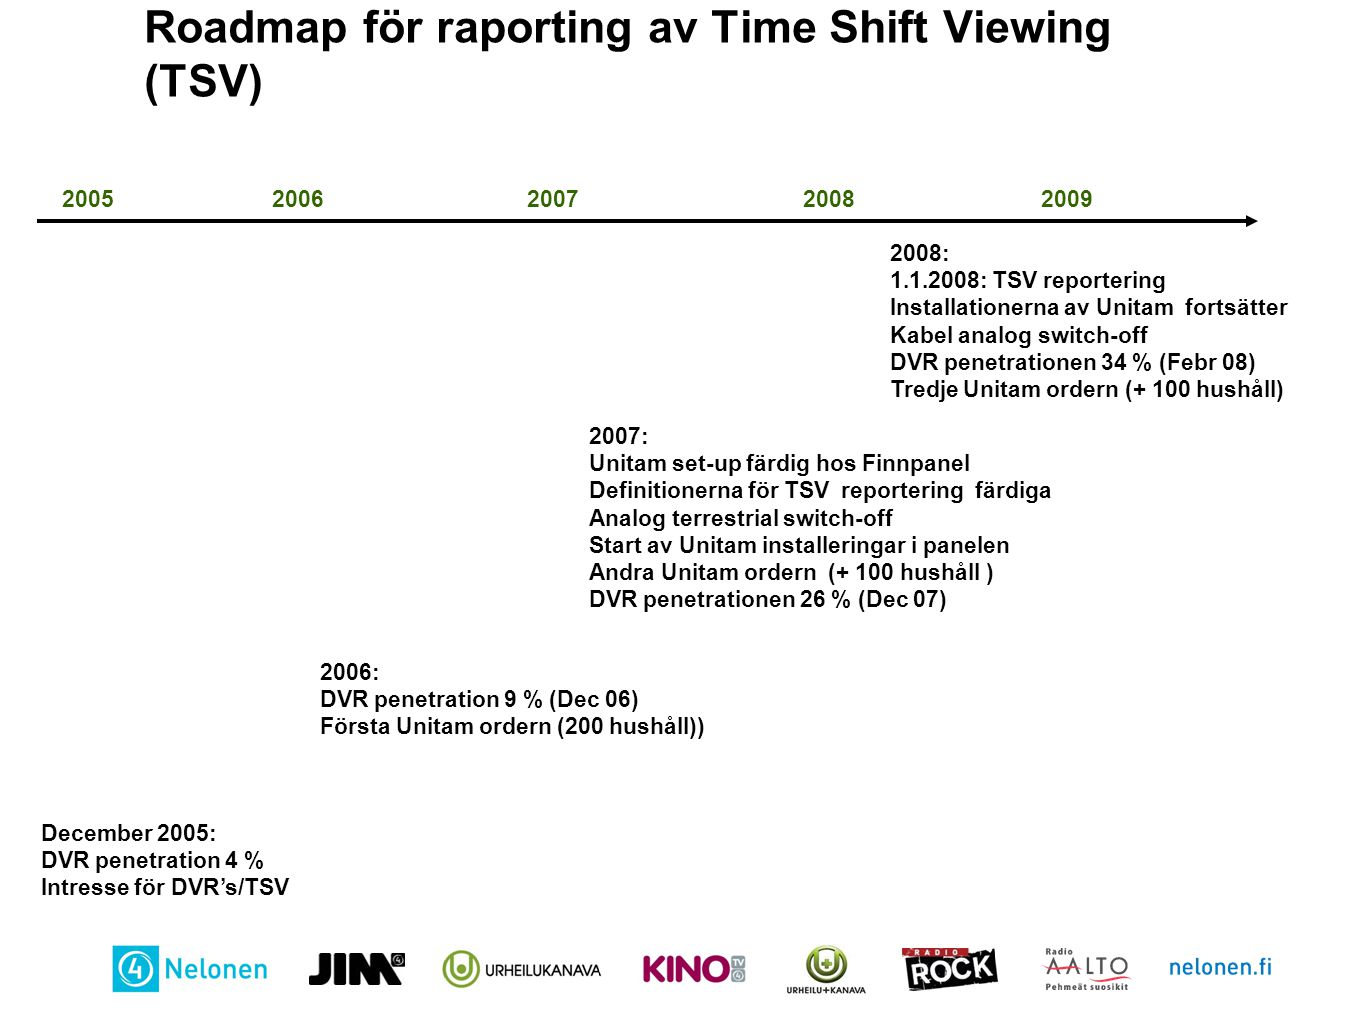 Roadmap för raporting av Time Shift Viewing (TSV)